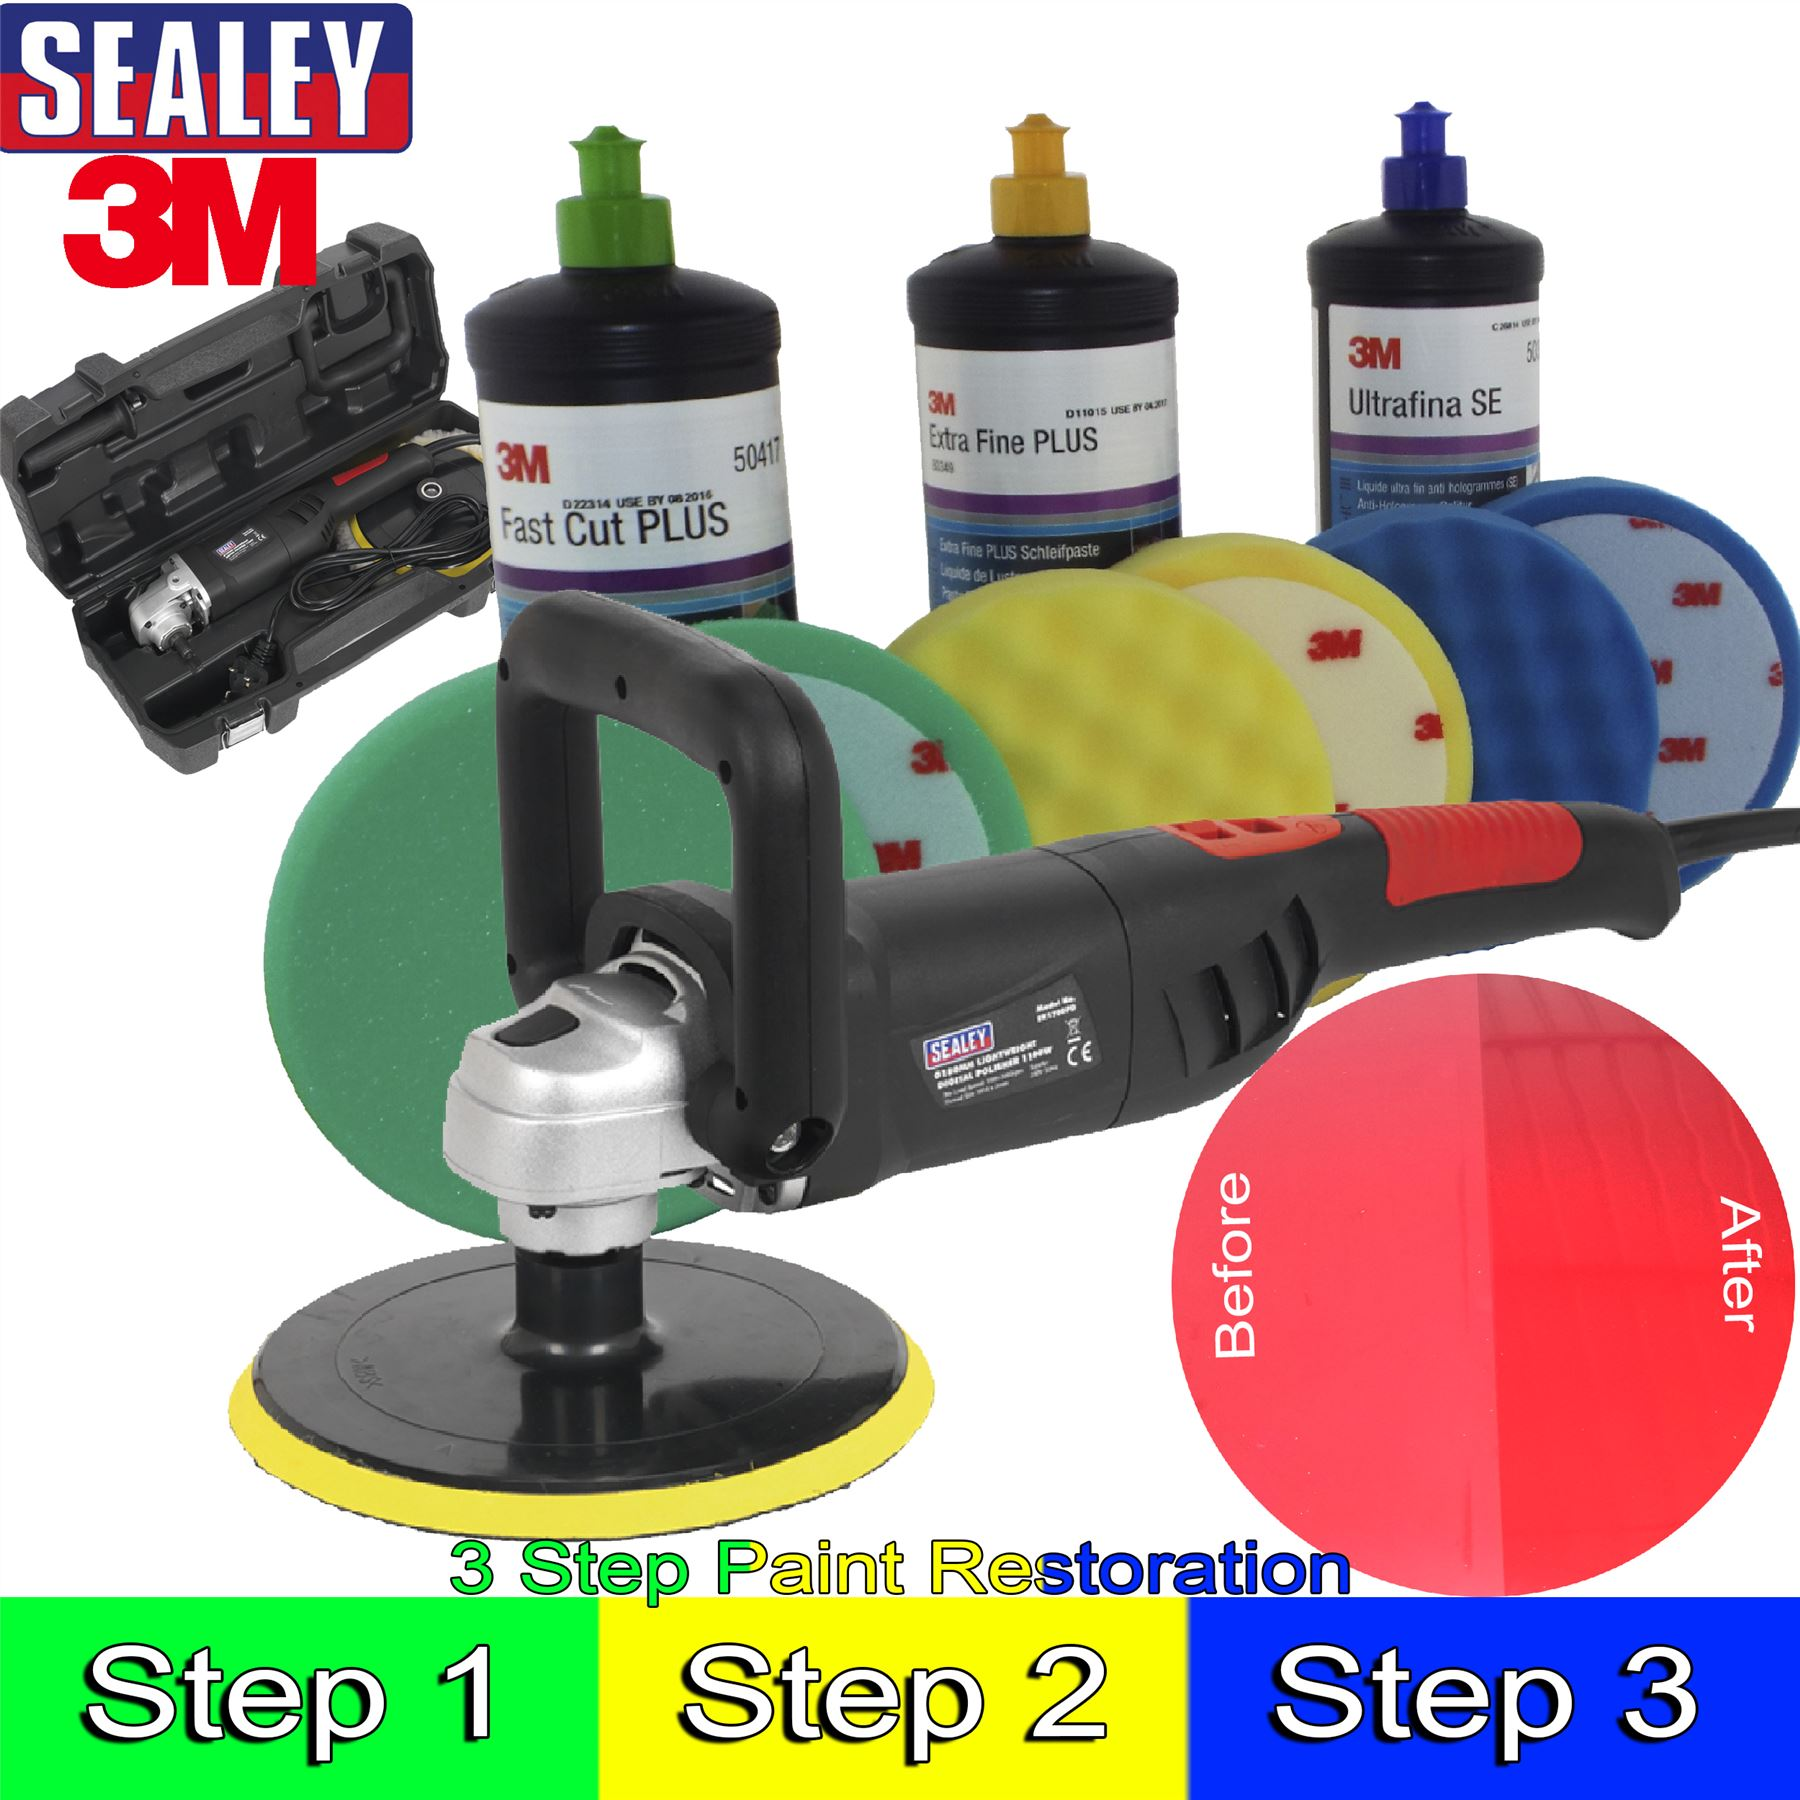 sealey 3m car body car kit digital polisher 3m polish paint restoration kit ebay. Black Bedroom Furniture Sets. Home Design Ideas